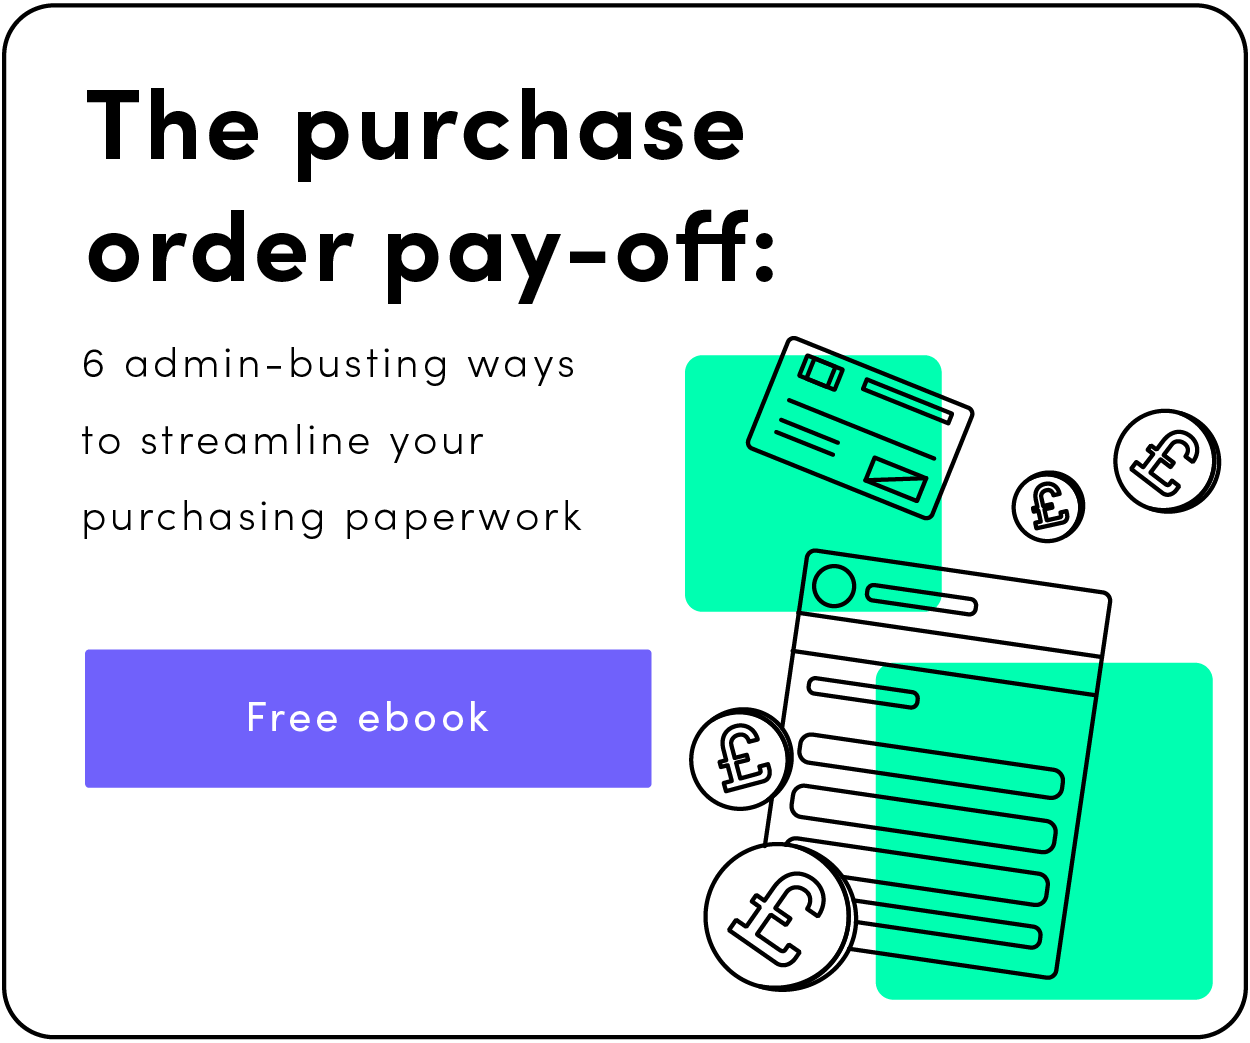 Download our guide: The Purchase Order Payoff